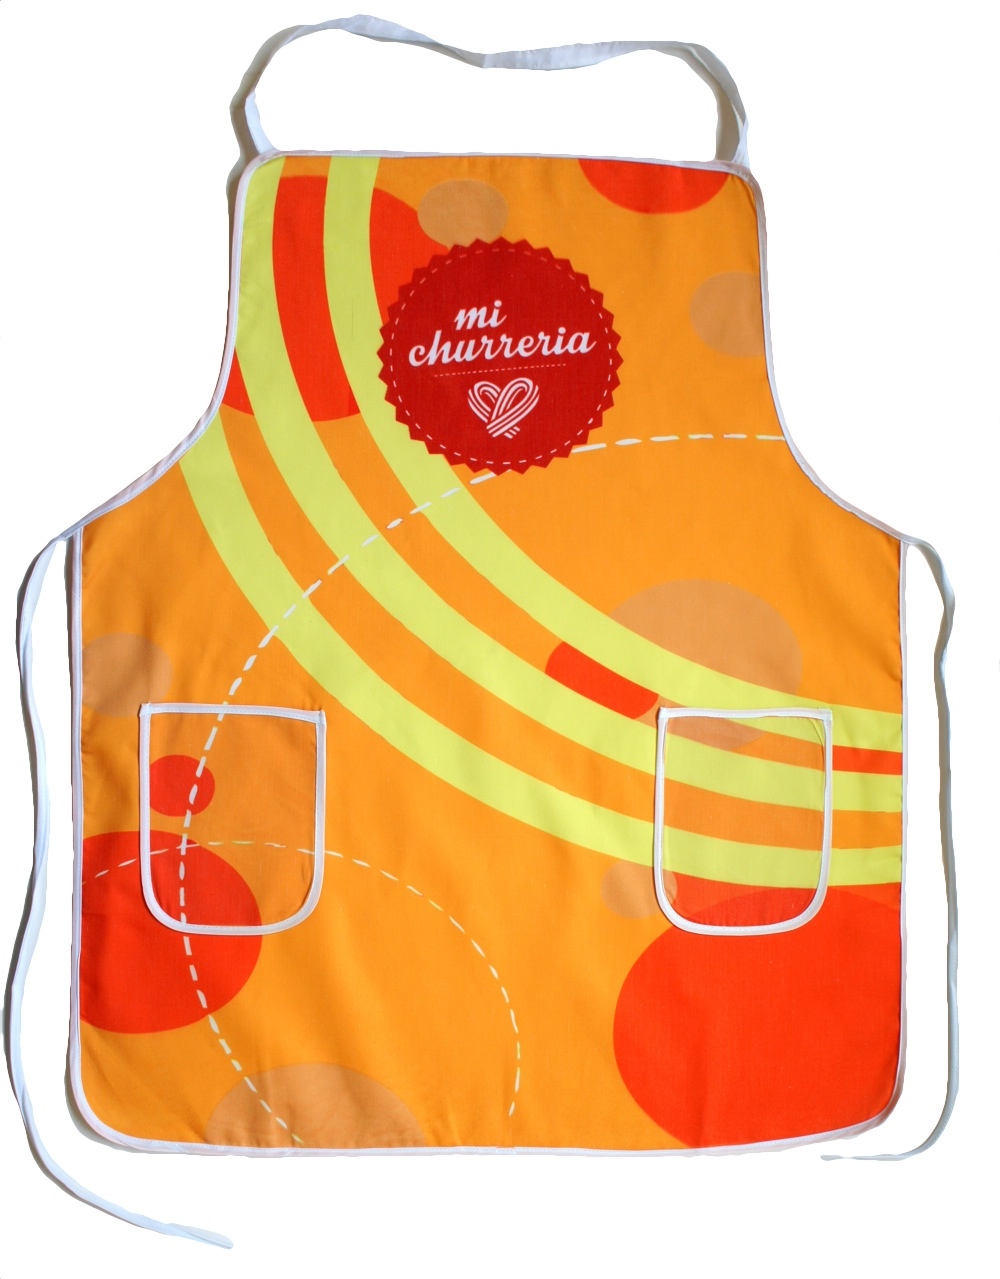 apron-mi-churreria-design